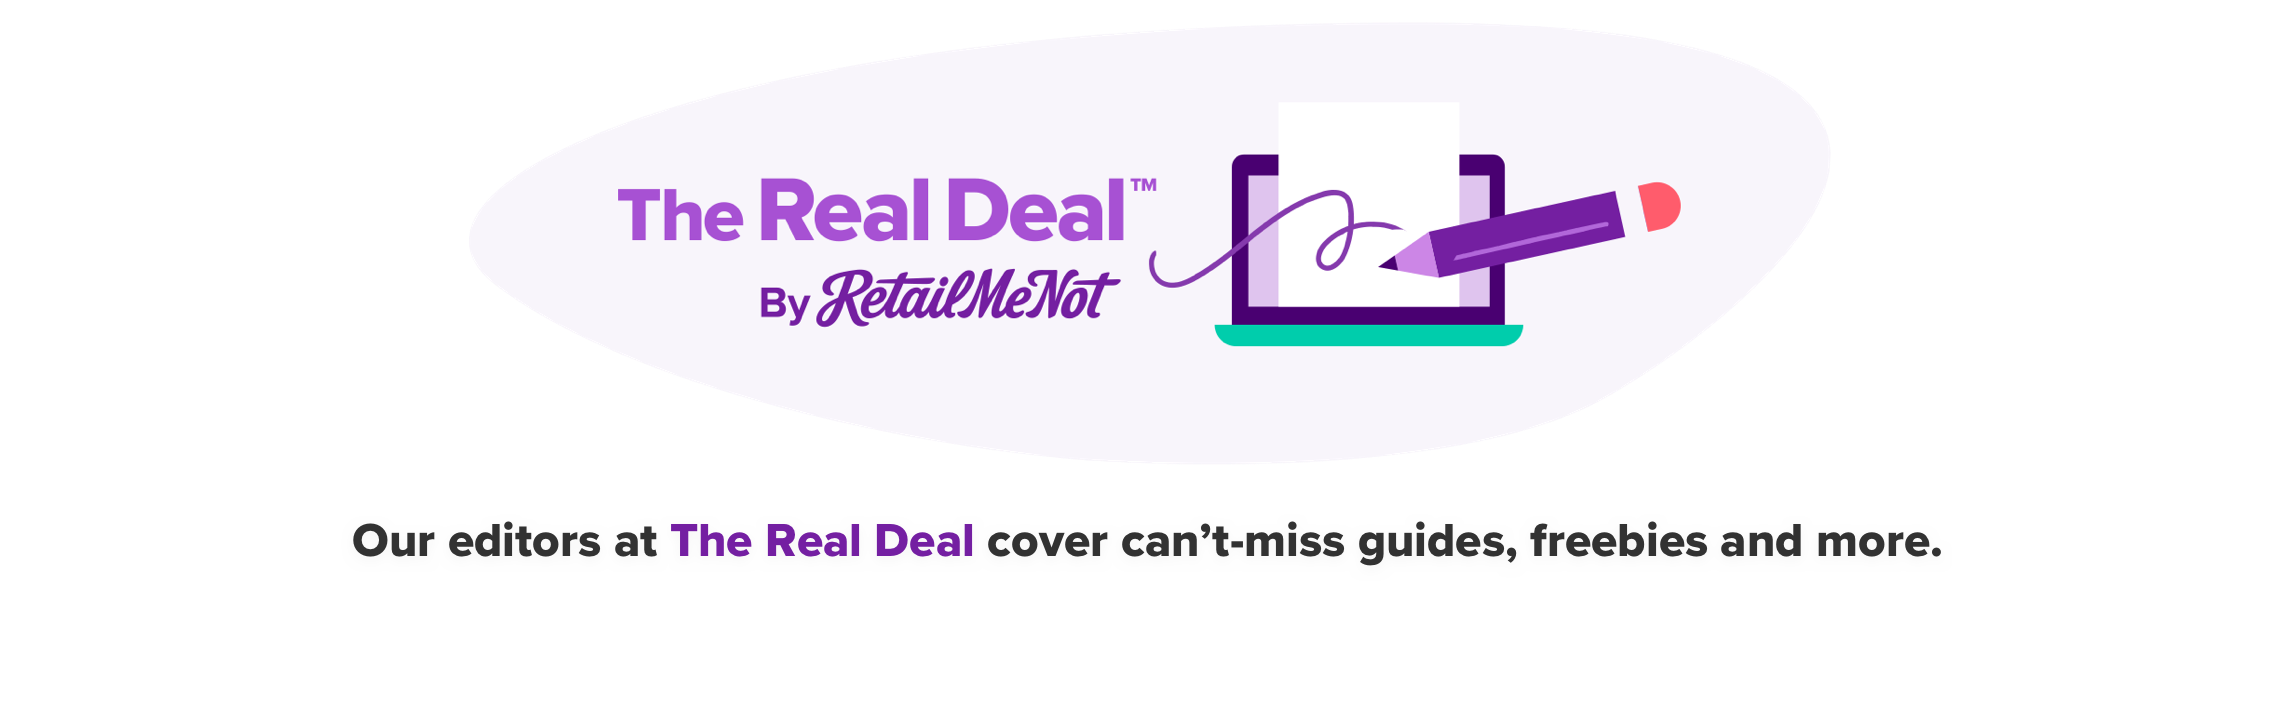 The Real Deal TM by RetailMeNot Our editors at The Real Deal cover can't-miss guides, freebies and more.